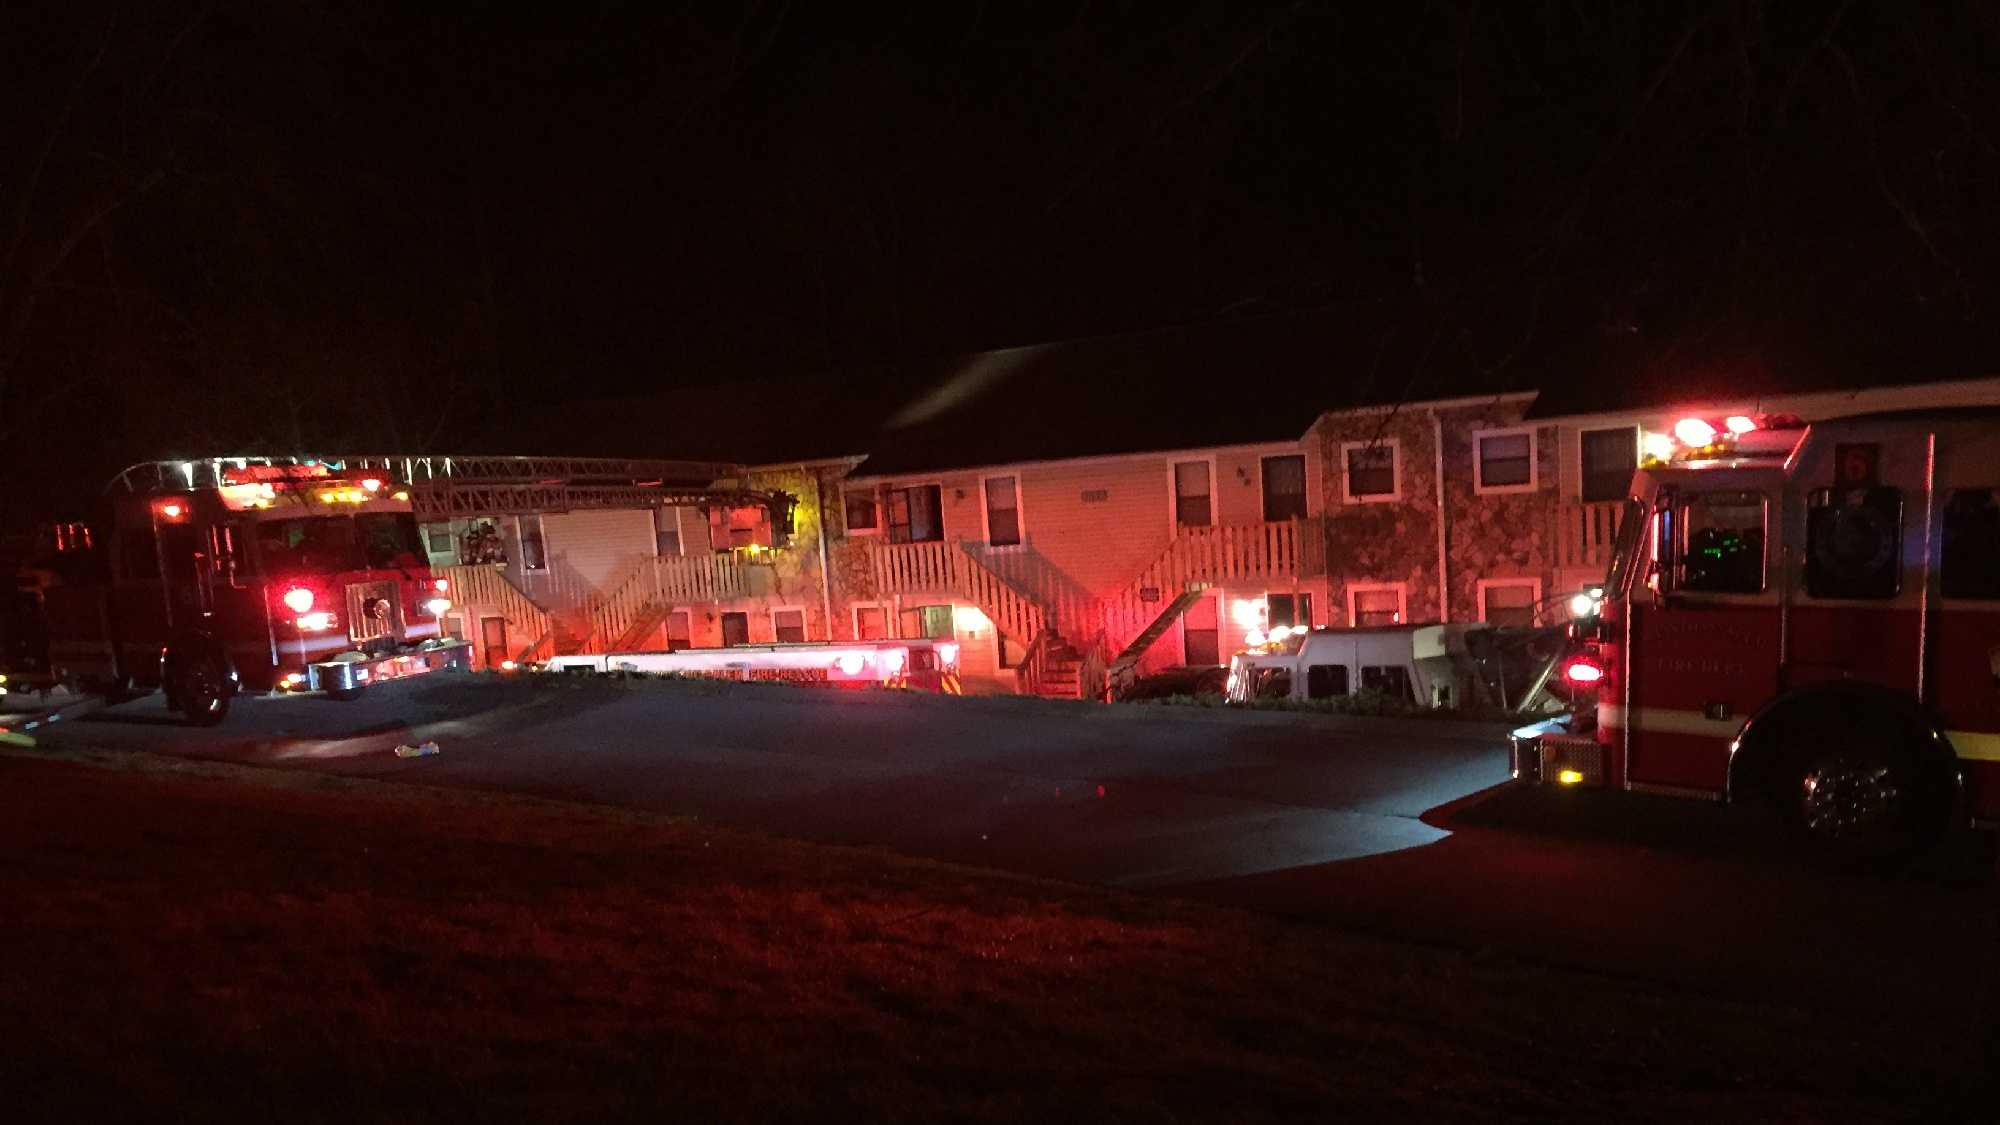 The fire occurred shortly before 10 p.m. Thursday in the 2000 block of Swaim Road.